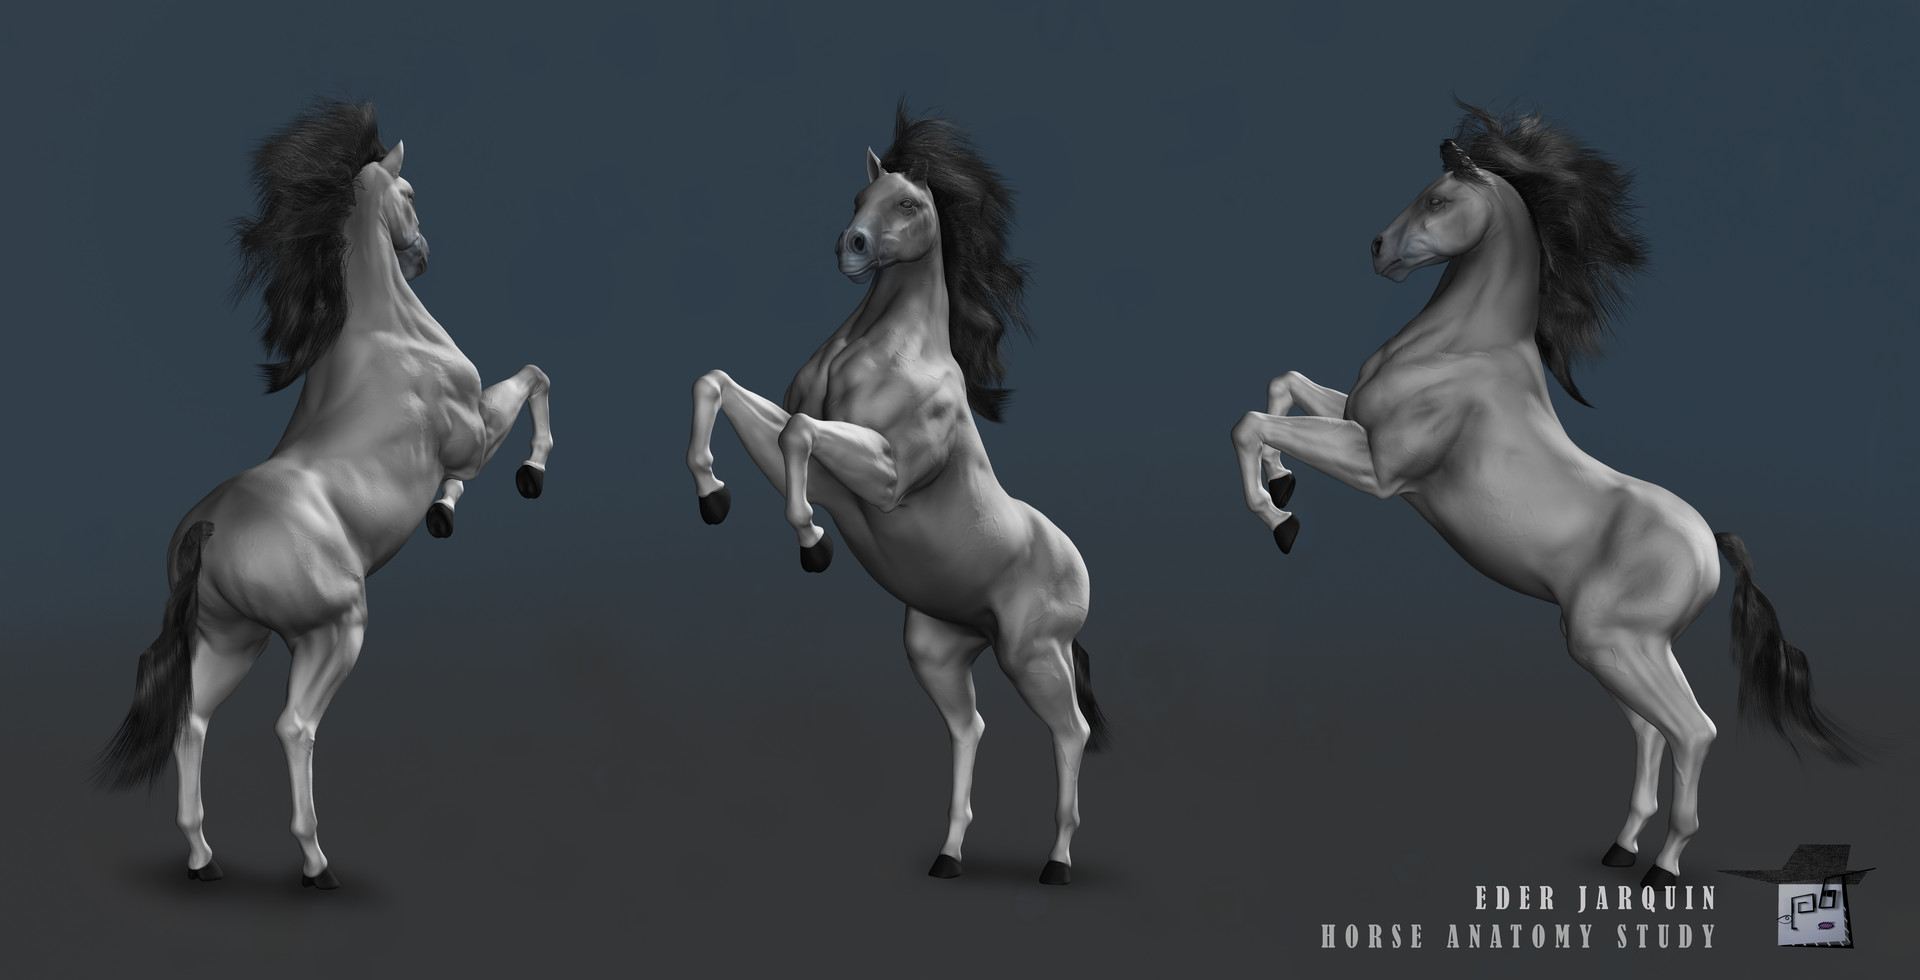 3D Horse Anatomy Software Home Facebook 2503495 - pacte-contre-hulot ...